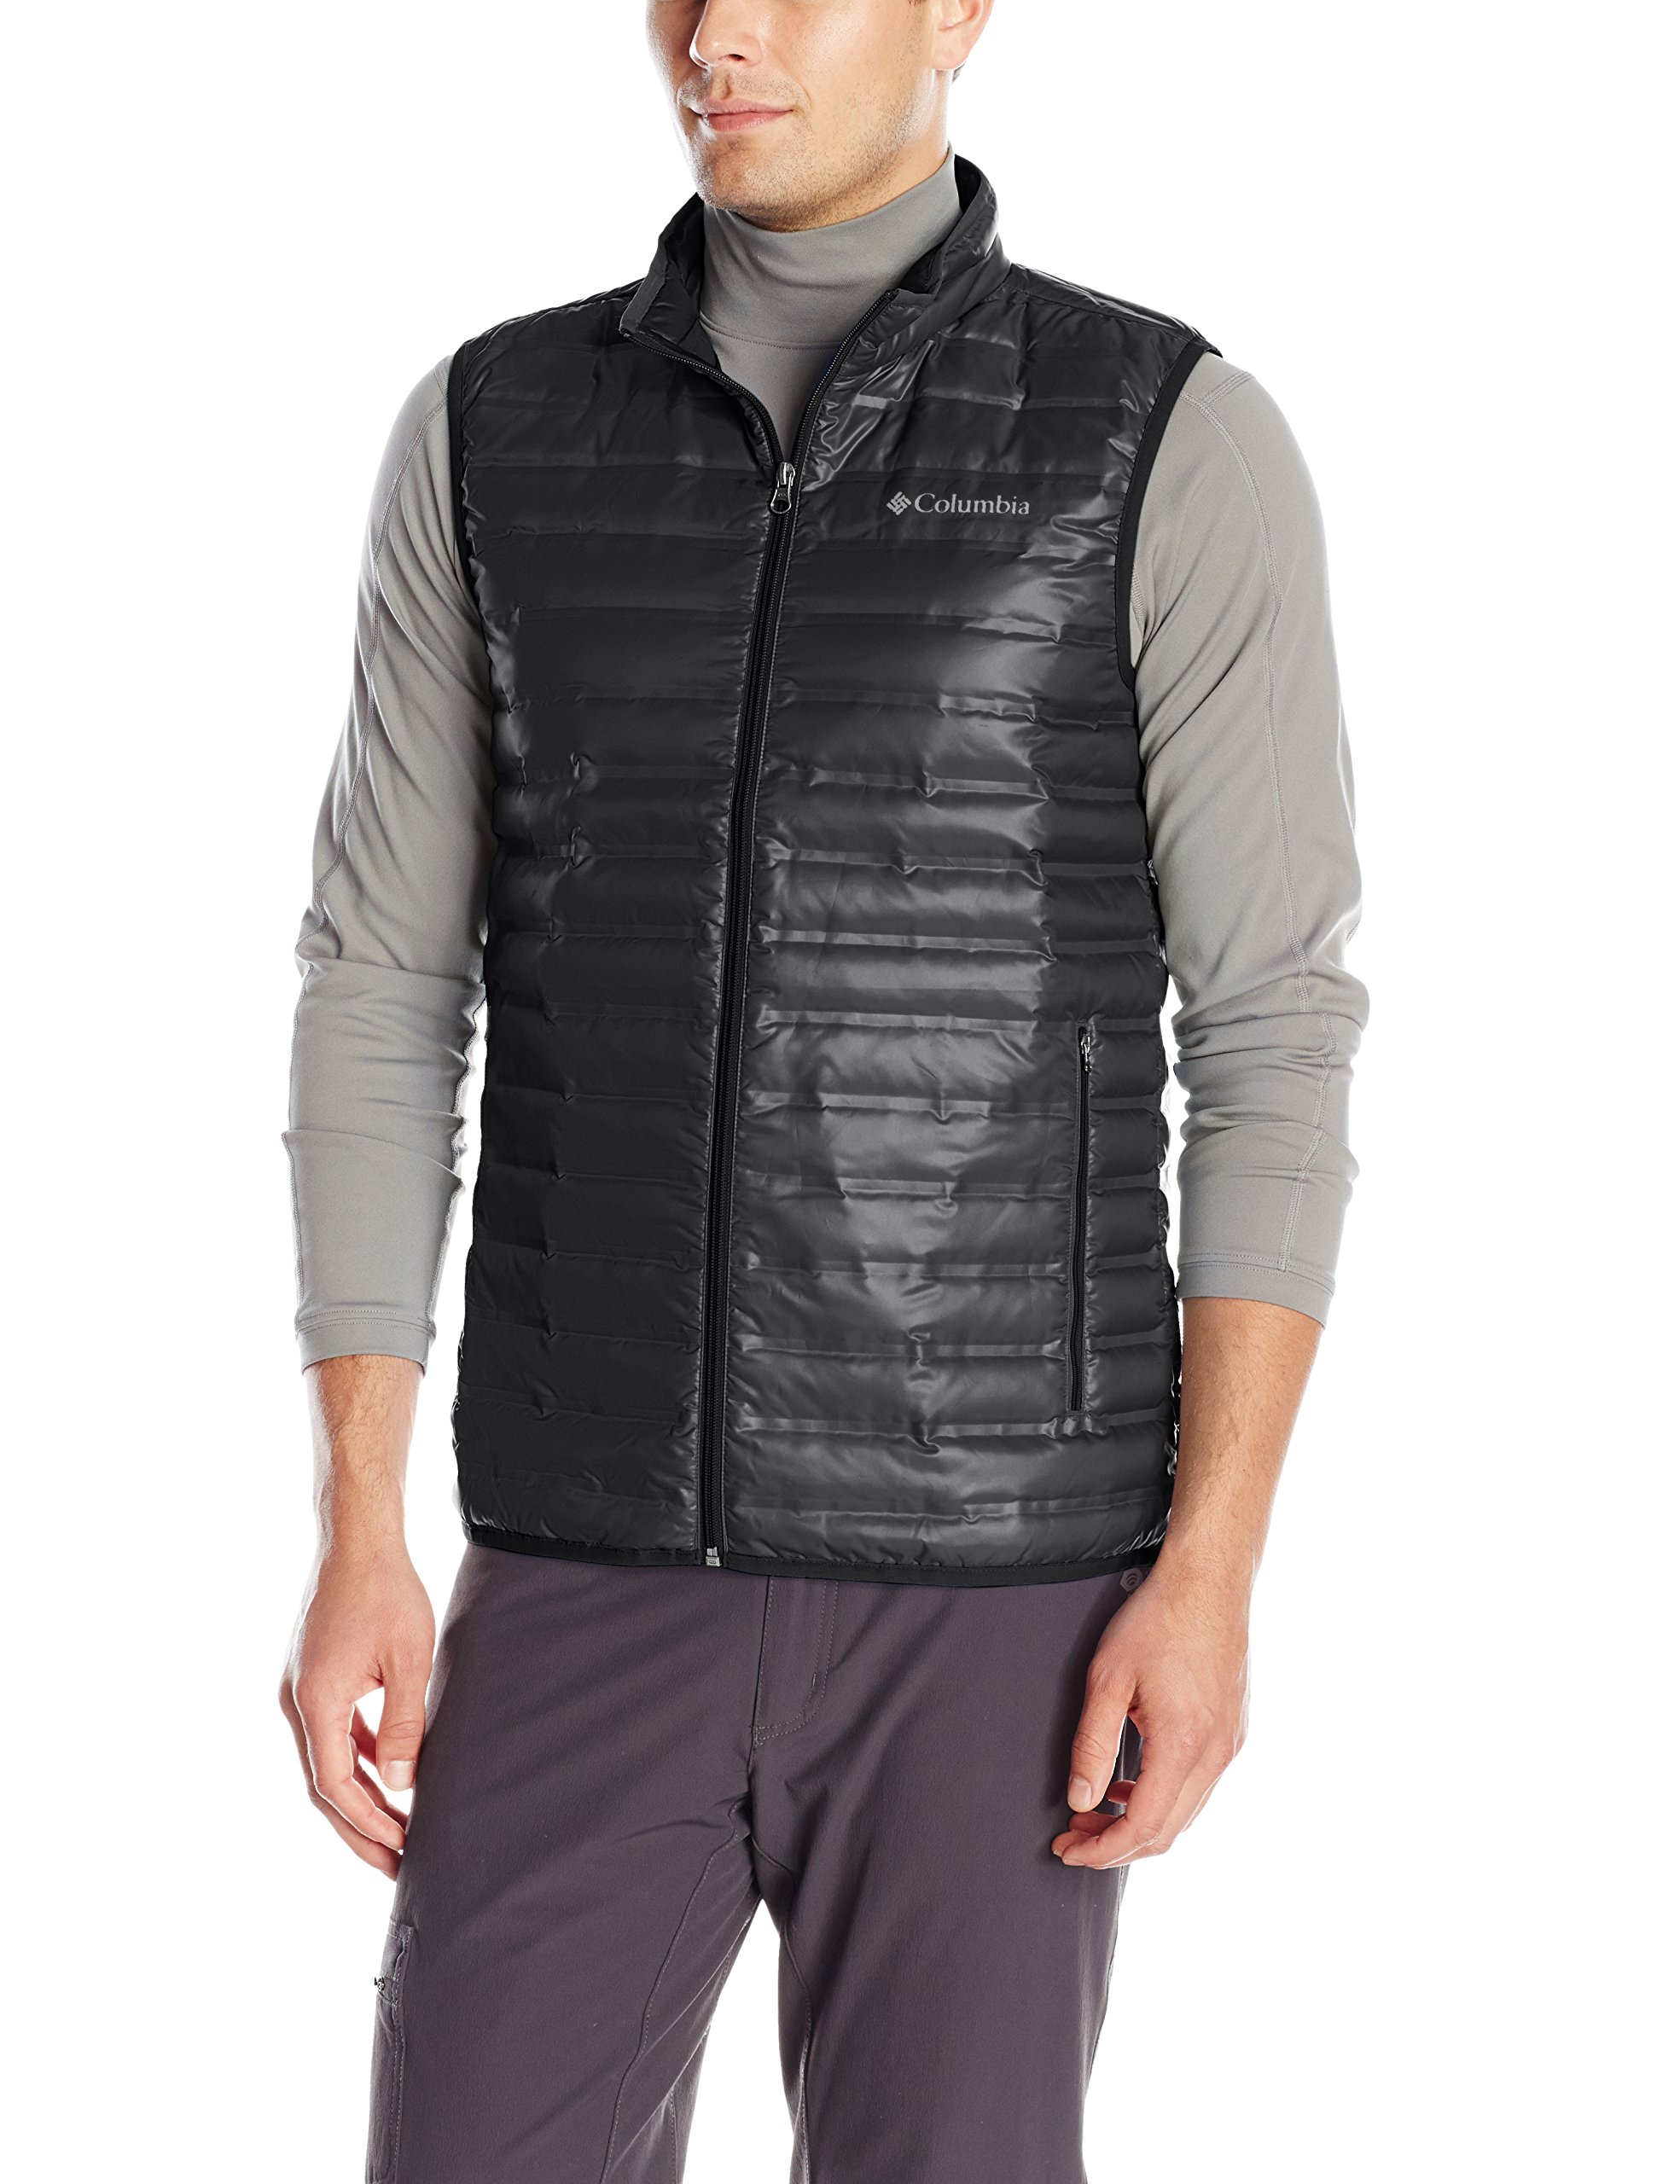 Columbia Sportswear Men's Flash Forward Down Vest, Black, XX-Large by Columbia